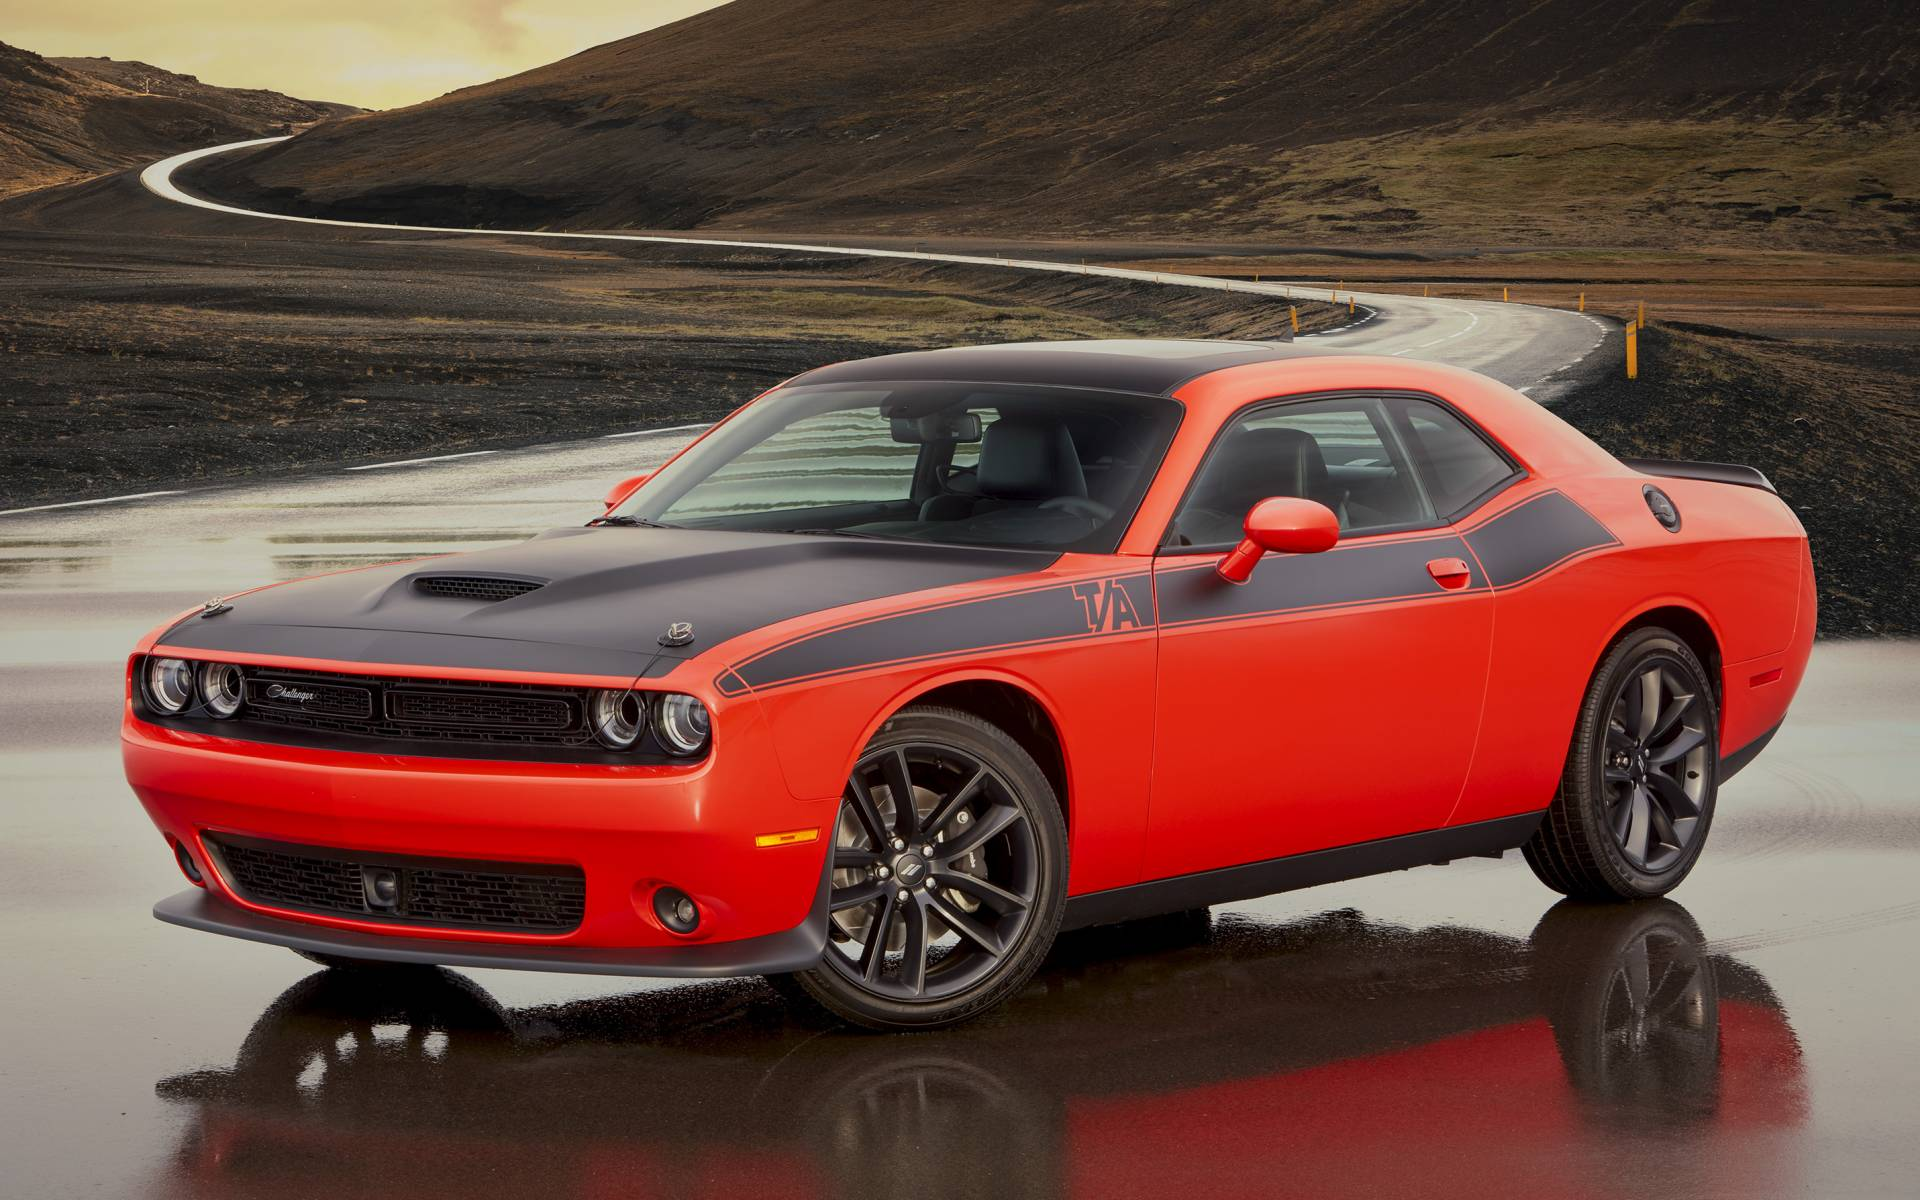 2020 Dodge Challenger News Reviews Picture Galleries And Videos The Car Guide